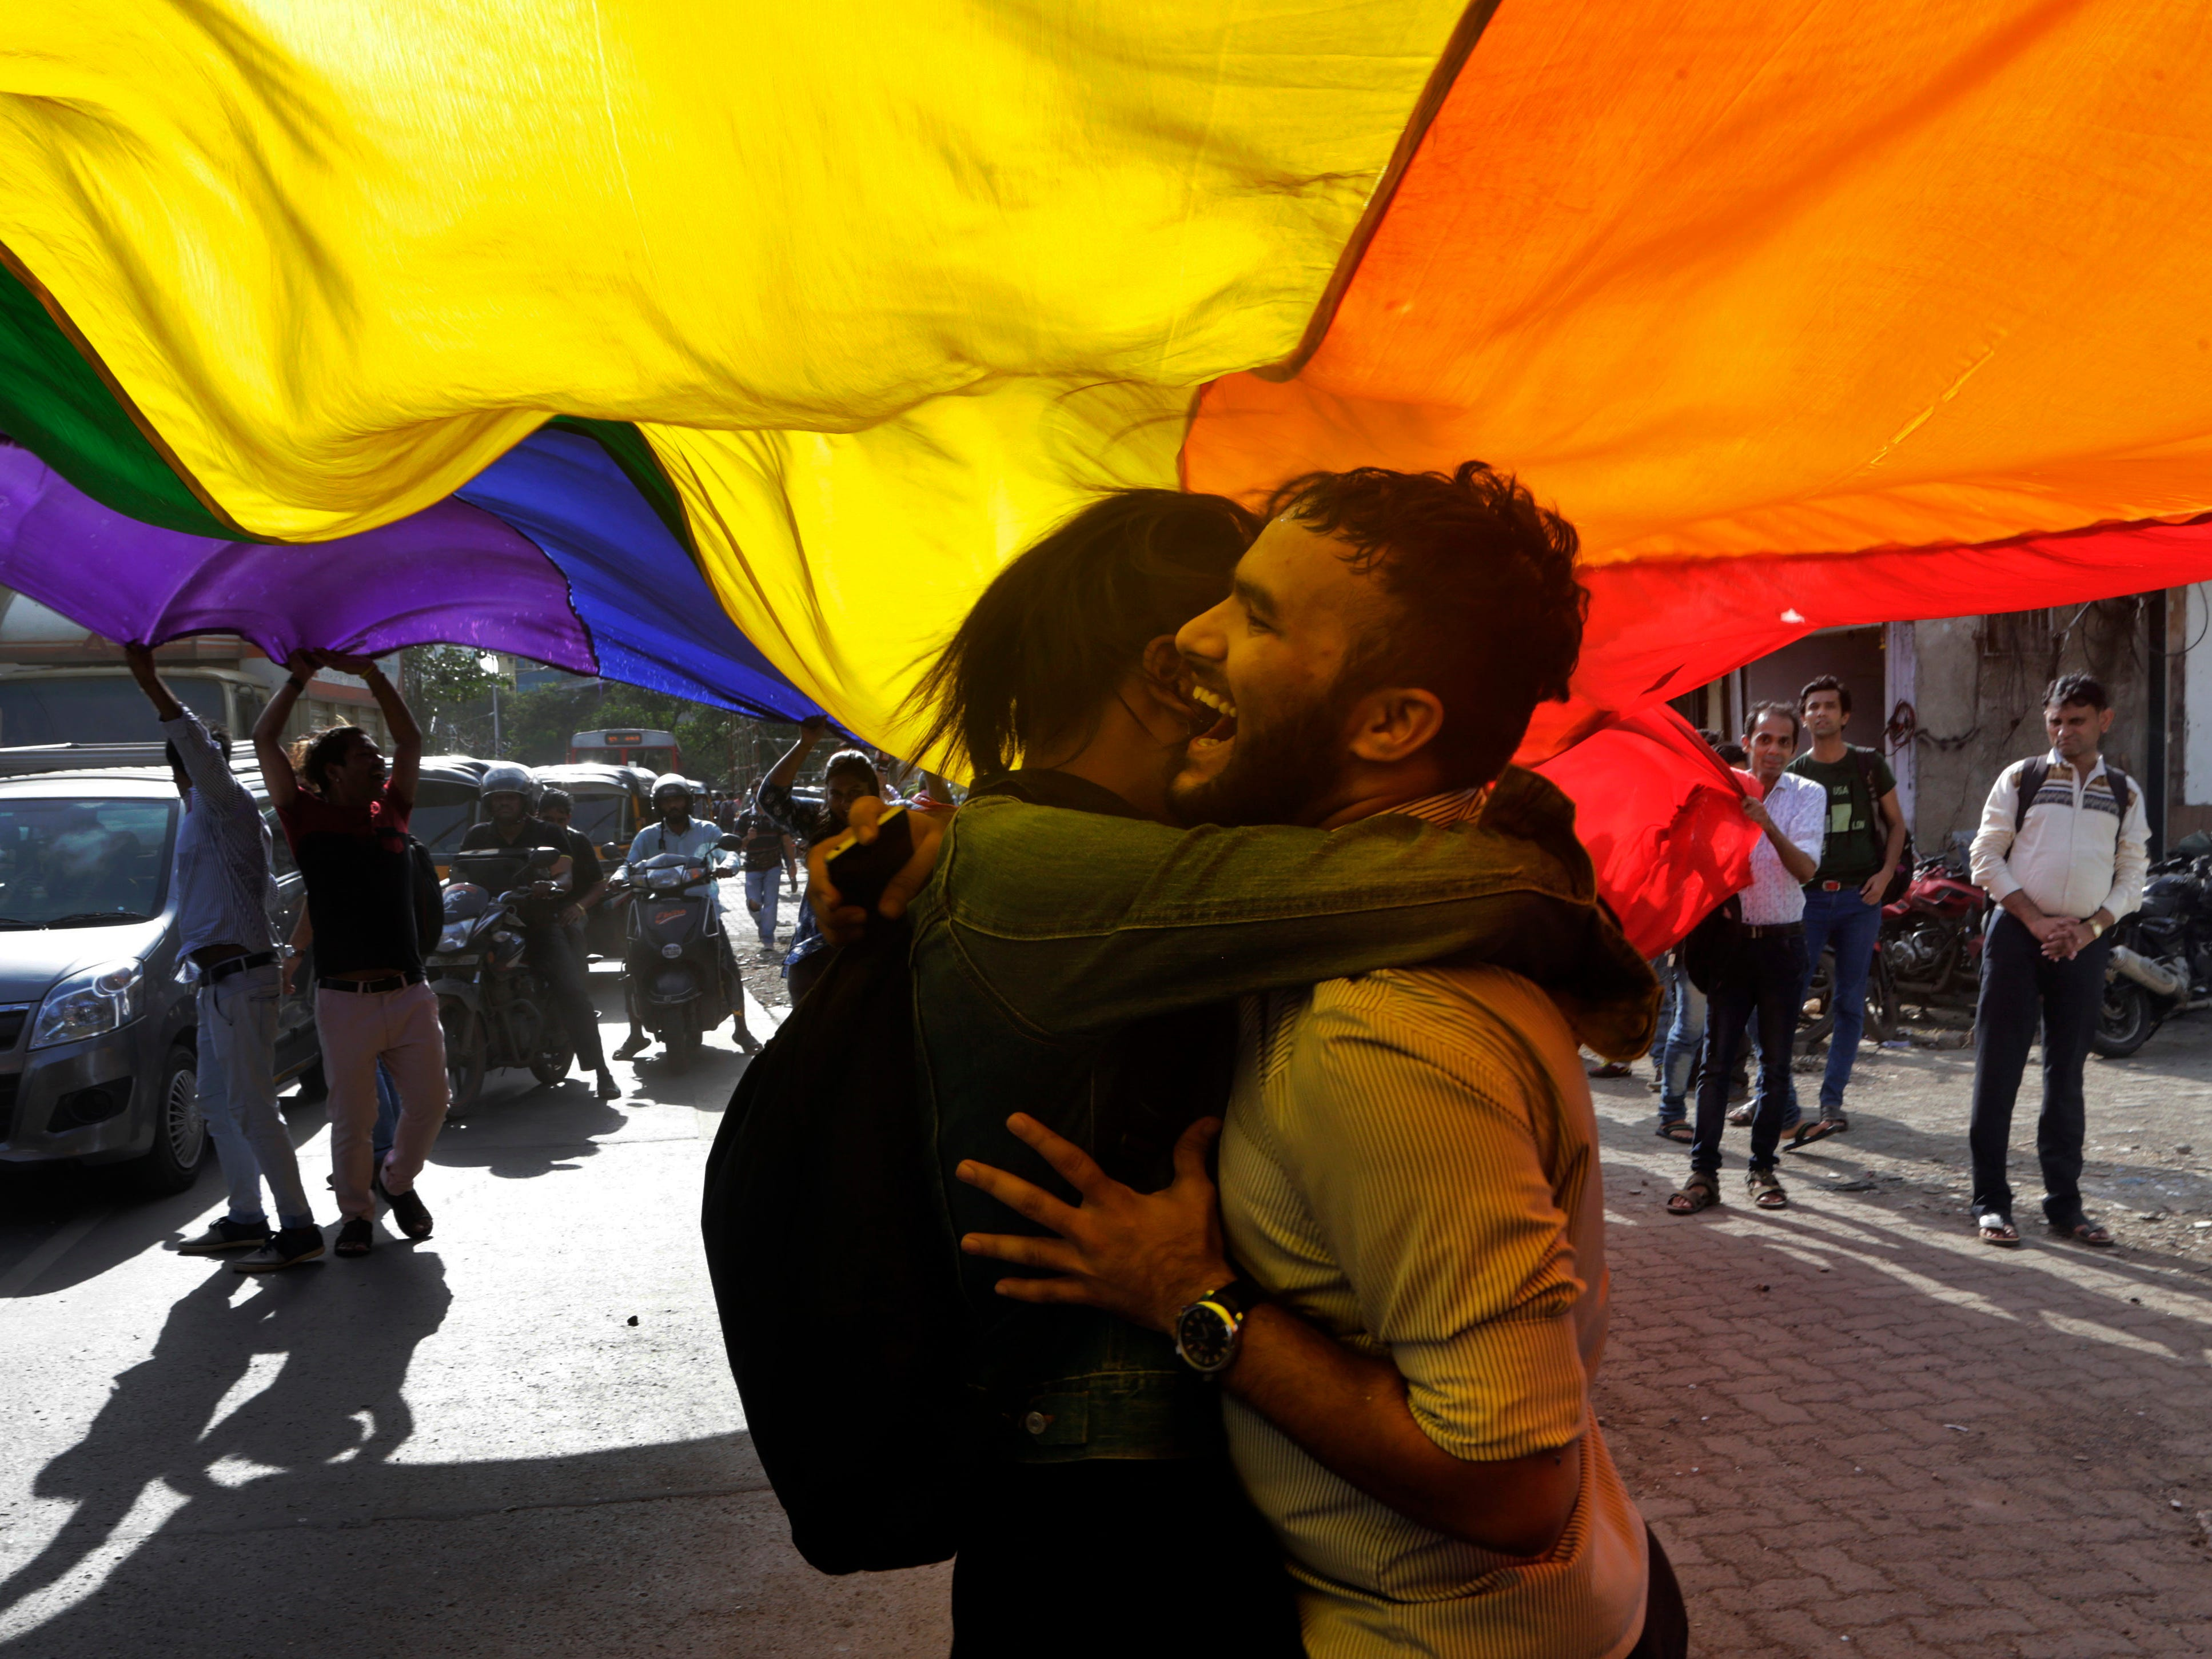 Gay rights activists celebrate after the country's top court struck down a colonial-era law that made homosexual acts punishable by up to 10 years in prison, in Mumbai, India, Sept. 6, 2018.